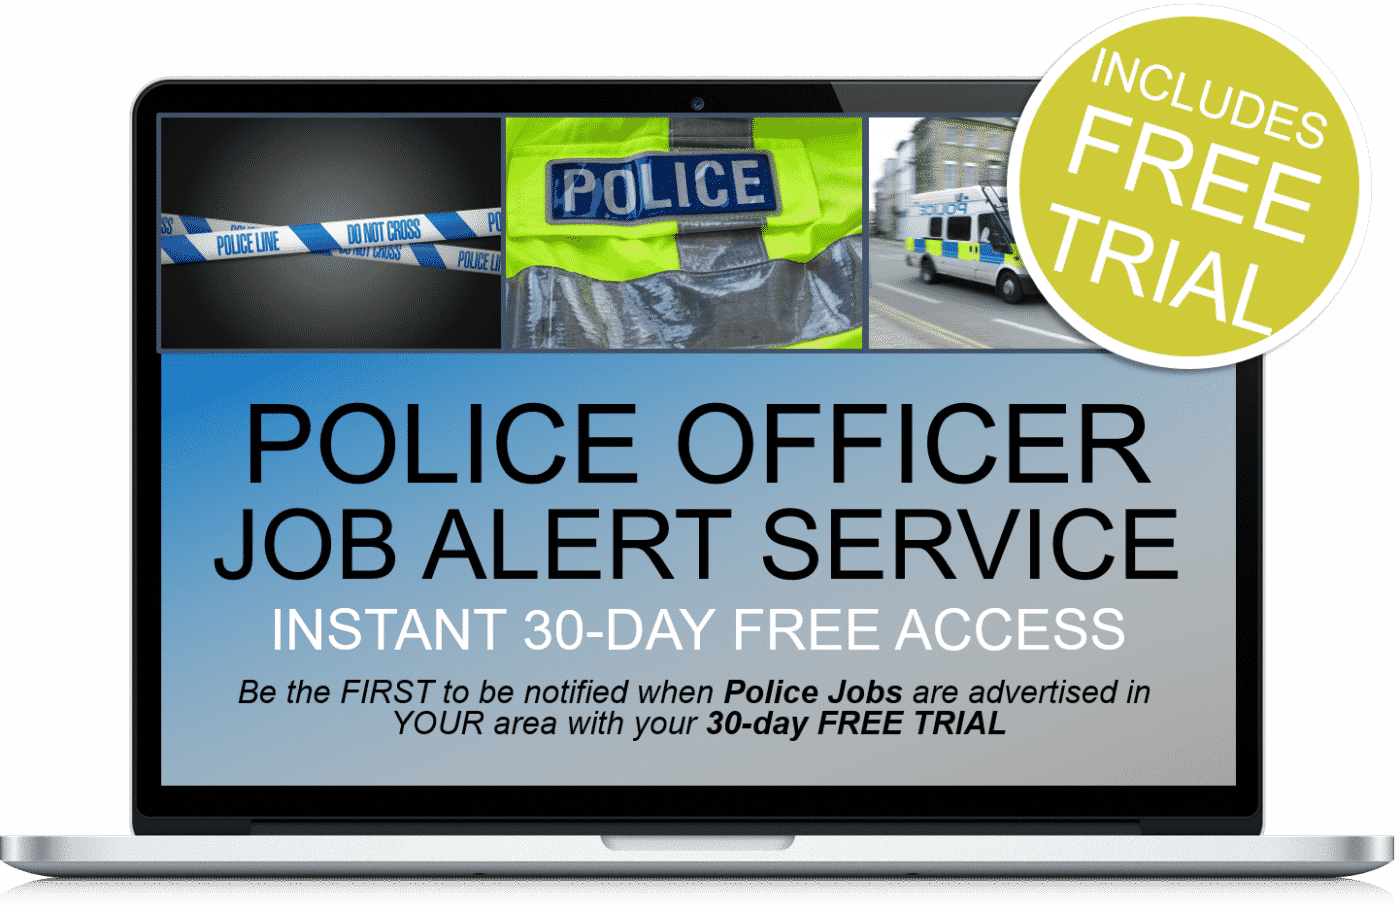 30-days free access to police job alerts - How 2 Become